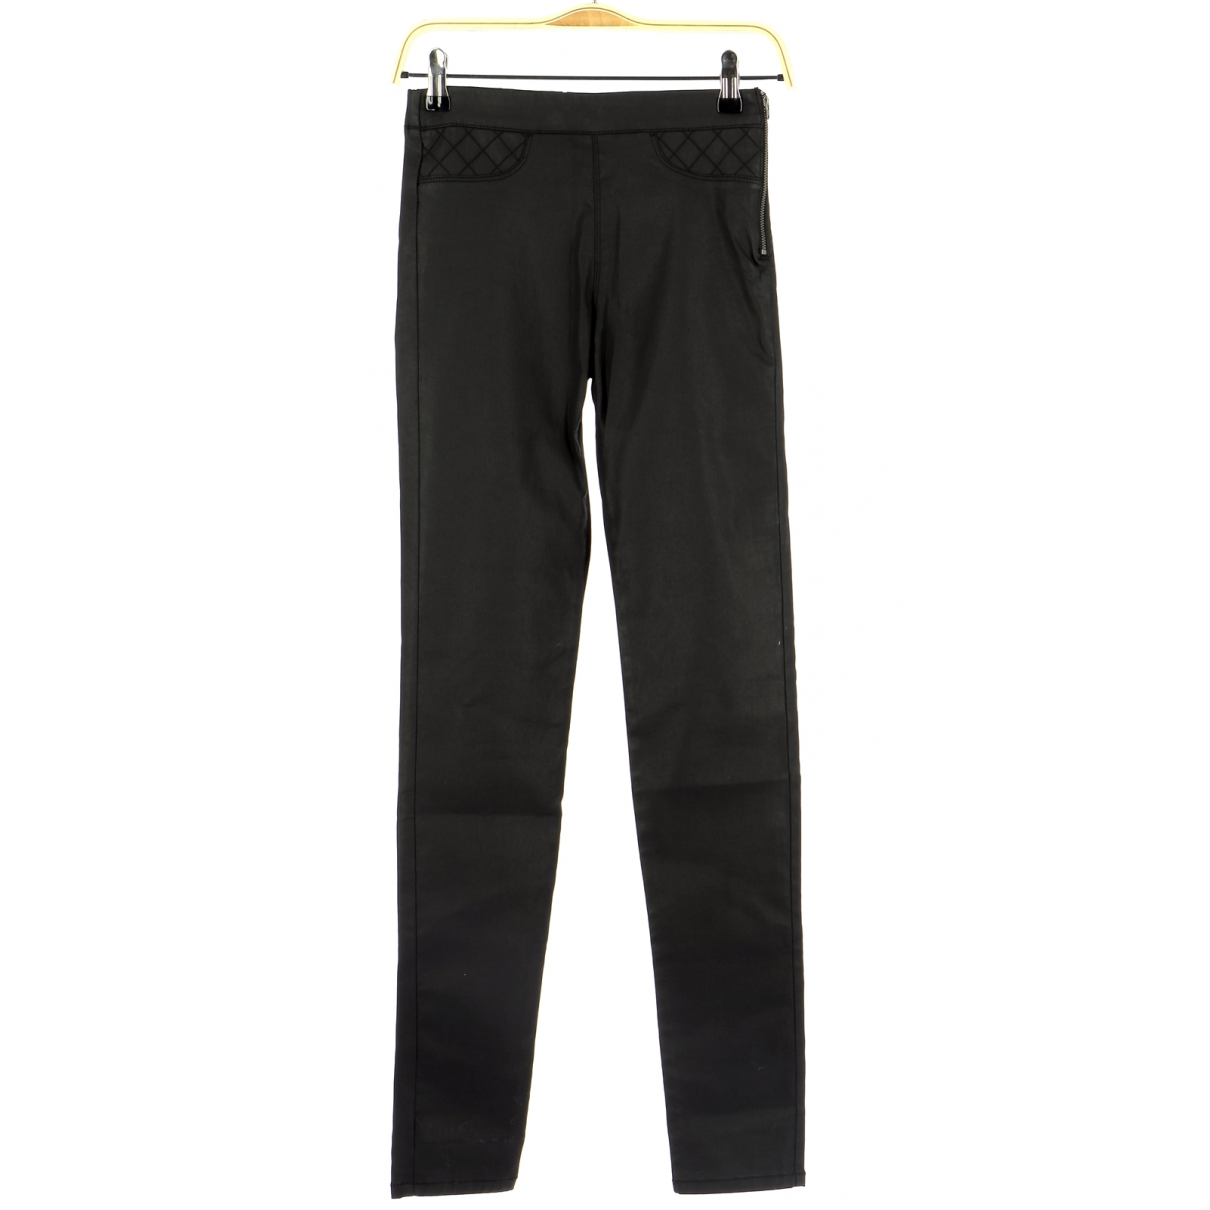 Comptoir Des Cotonniers N Black Cotton Trousers for Men 36 FR